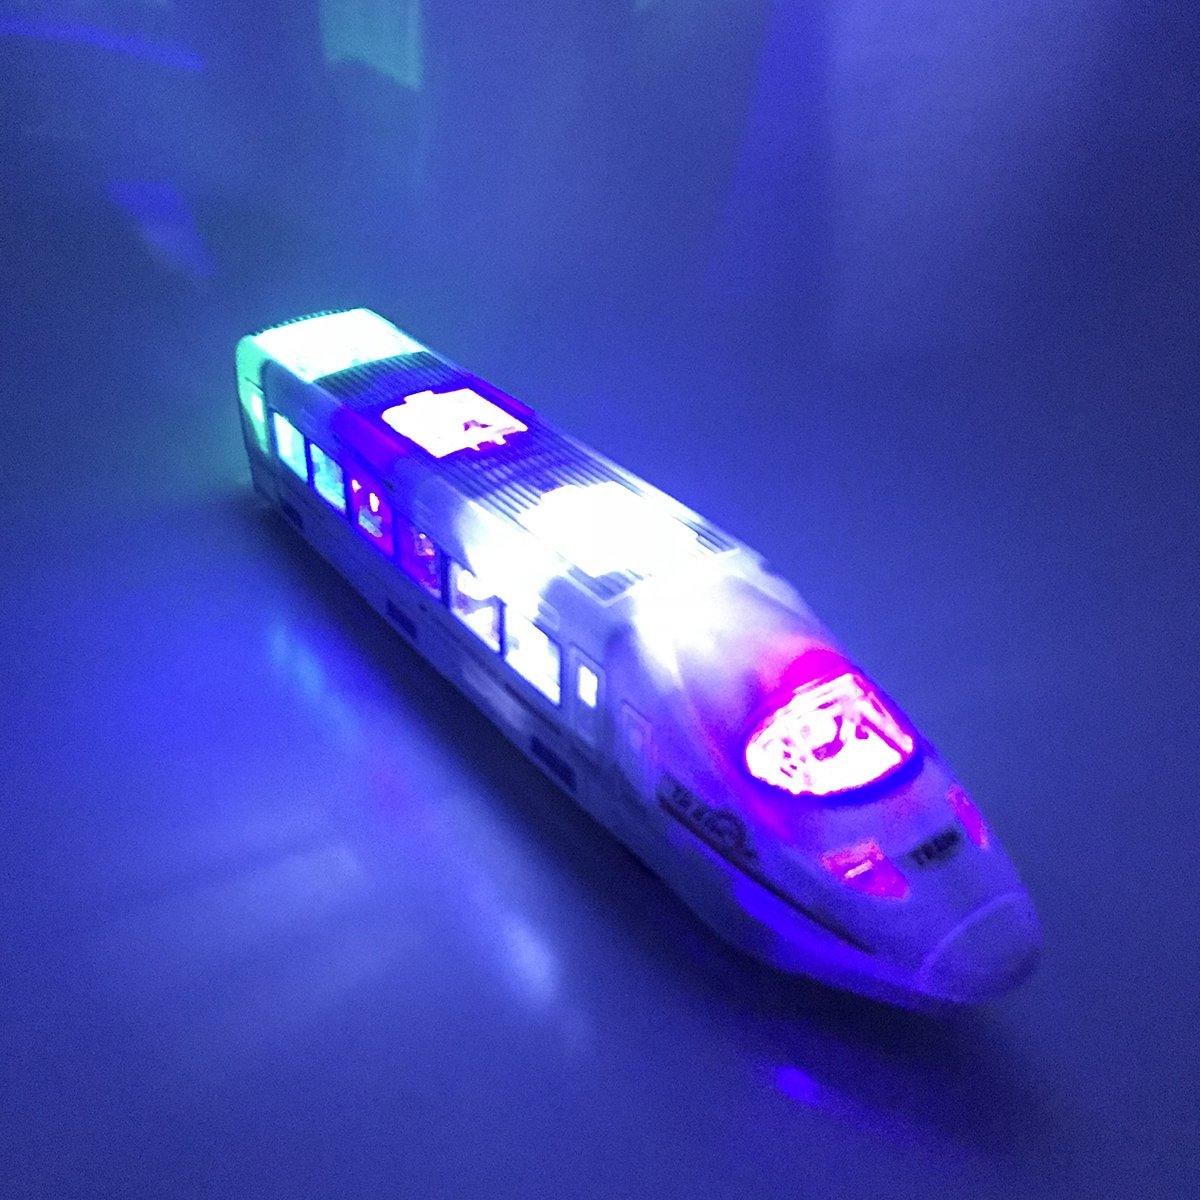 Electric Train Car Toy with Flashing Lights and Exciting Music, Best Birthday Gift for Toddlers Boys (Ages 3 years & Up)